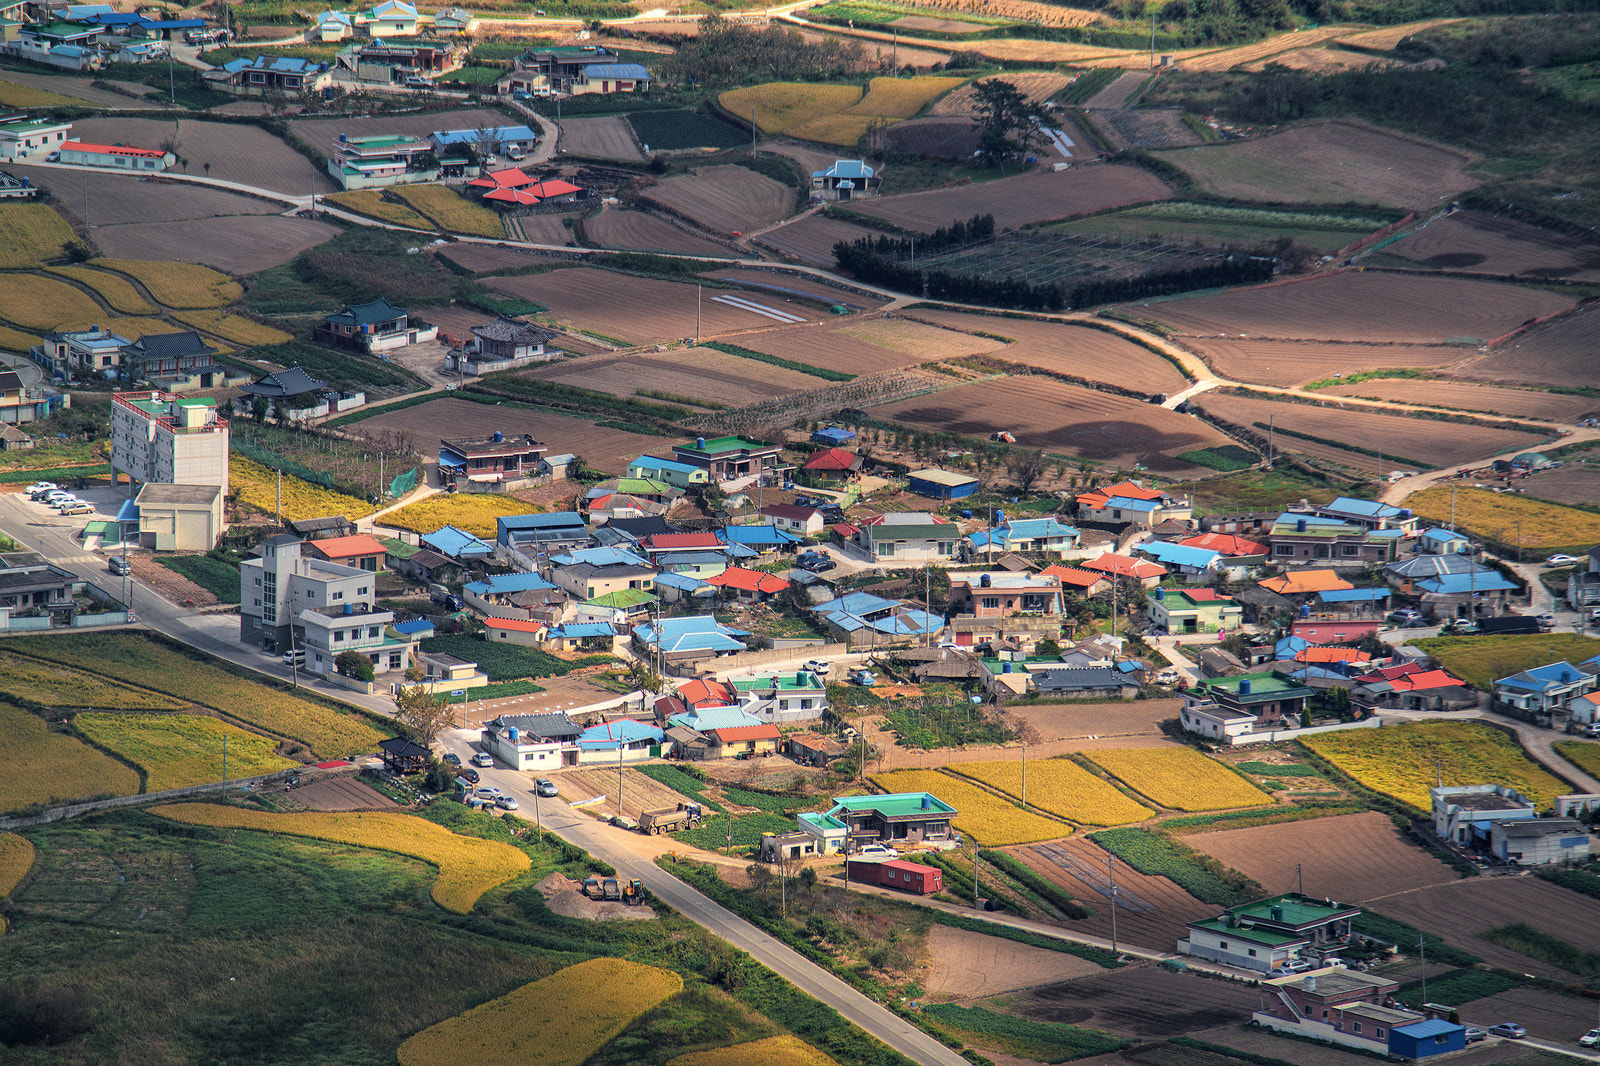 Photograph Seaside village by Sun Byoung Park on 500px